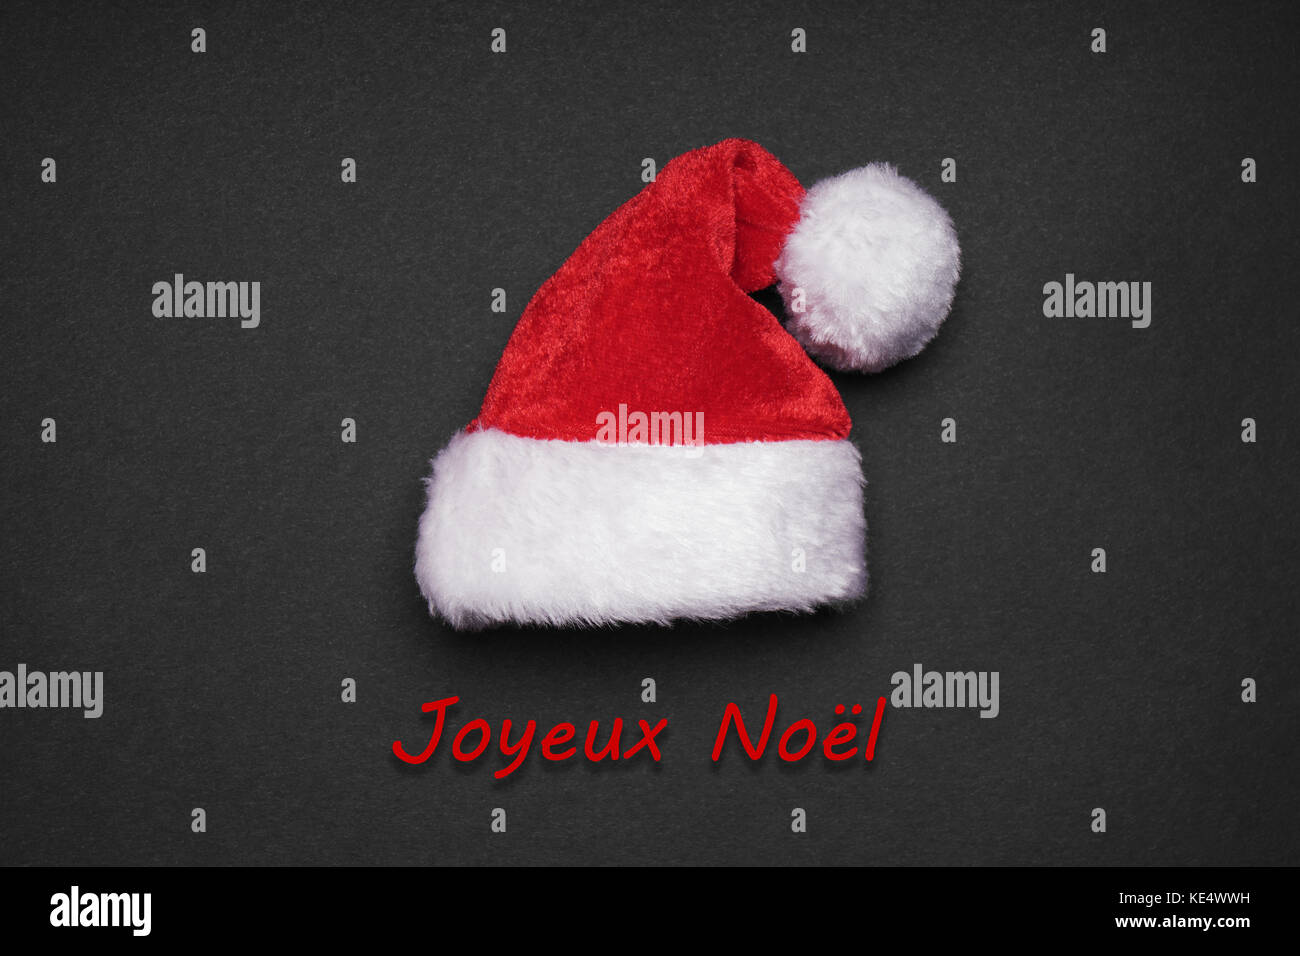 Joyeux noel french christmas greeting card stock photo royalty free joyeux noel french christmas greeting card m4hsunfo Images